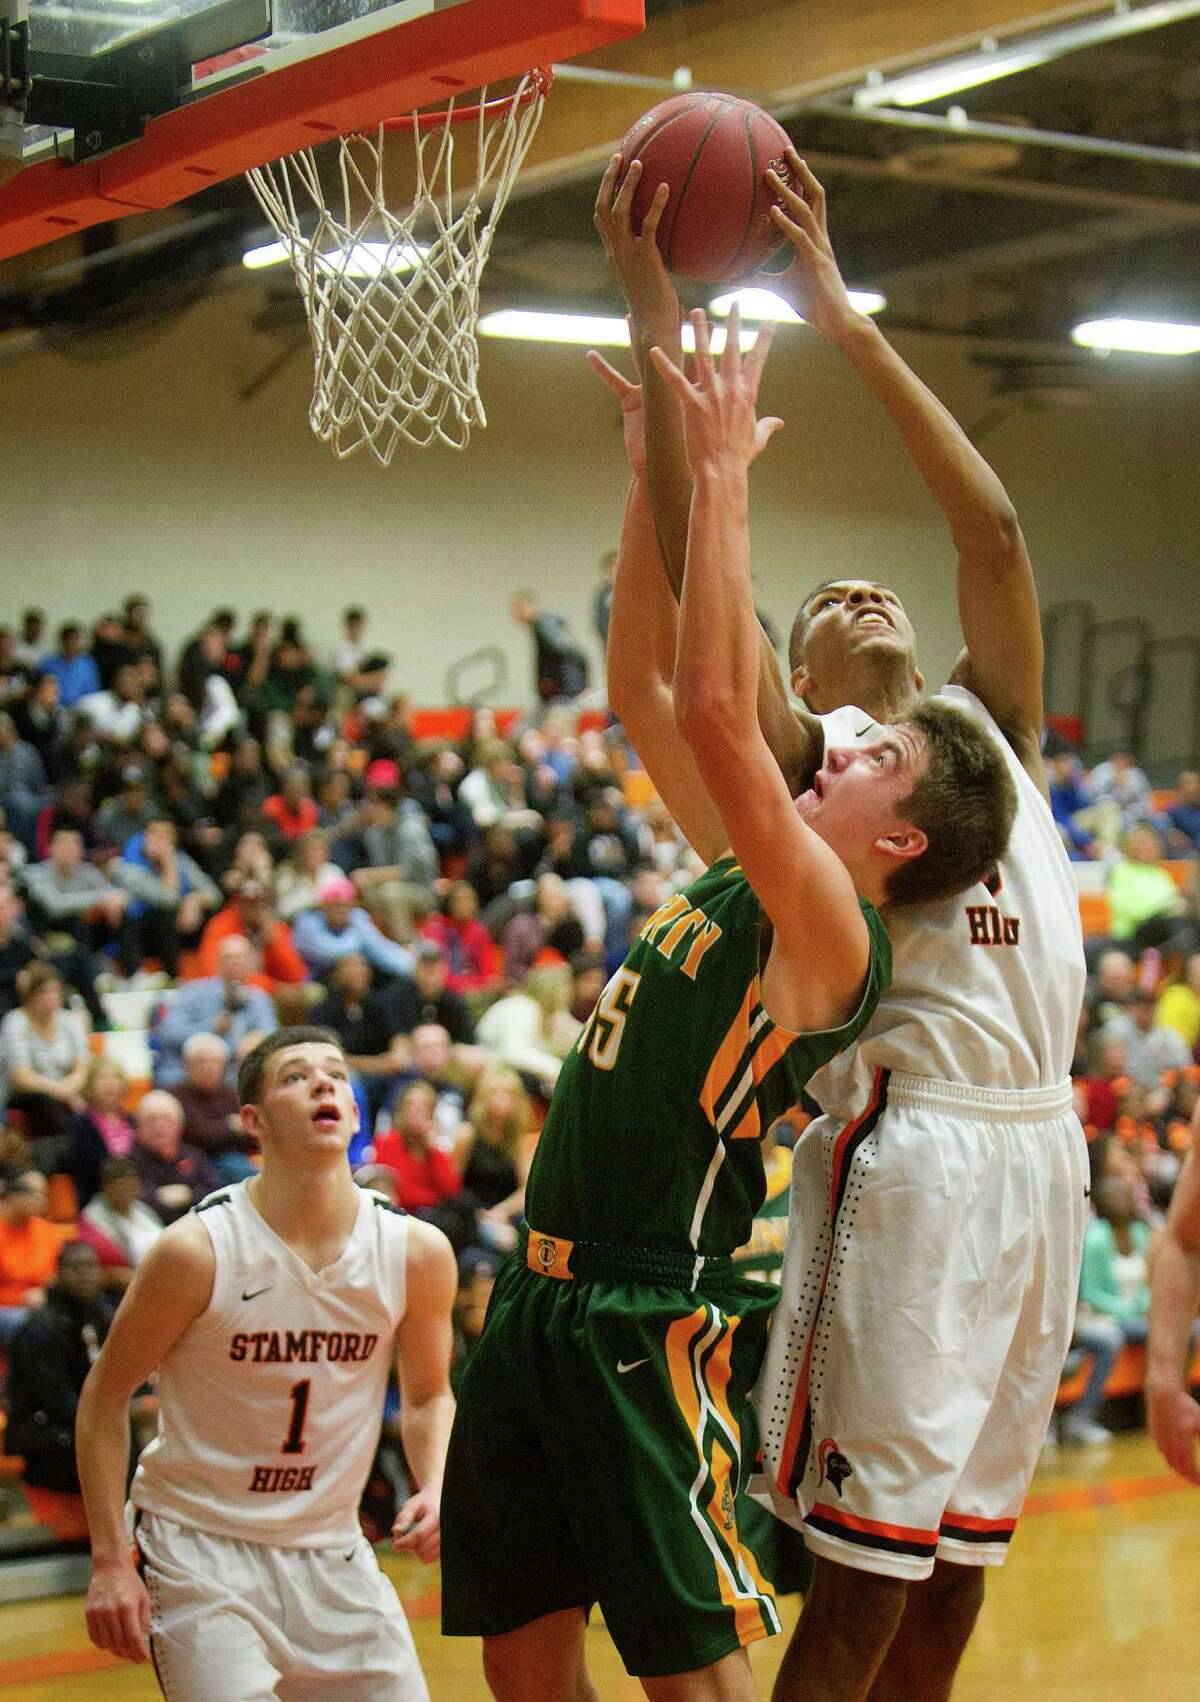 Stamford's Kweshon Askew gets the rebound as Trinity Catholic's Johnny Somers reaches for the ball during Friday's basketball game at Stamford High School on December 19, 2014.